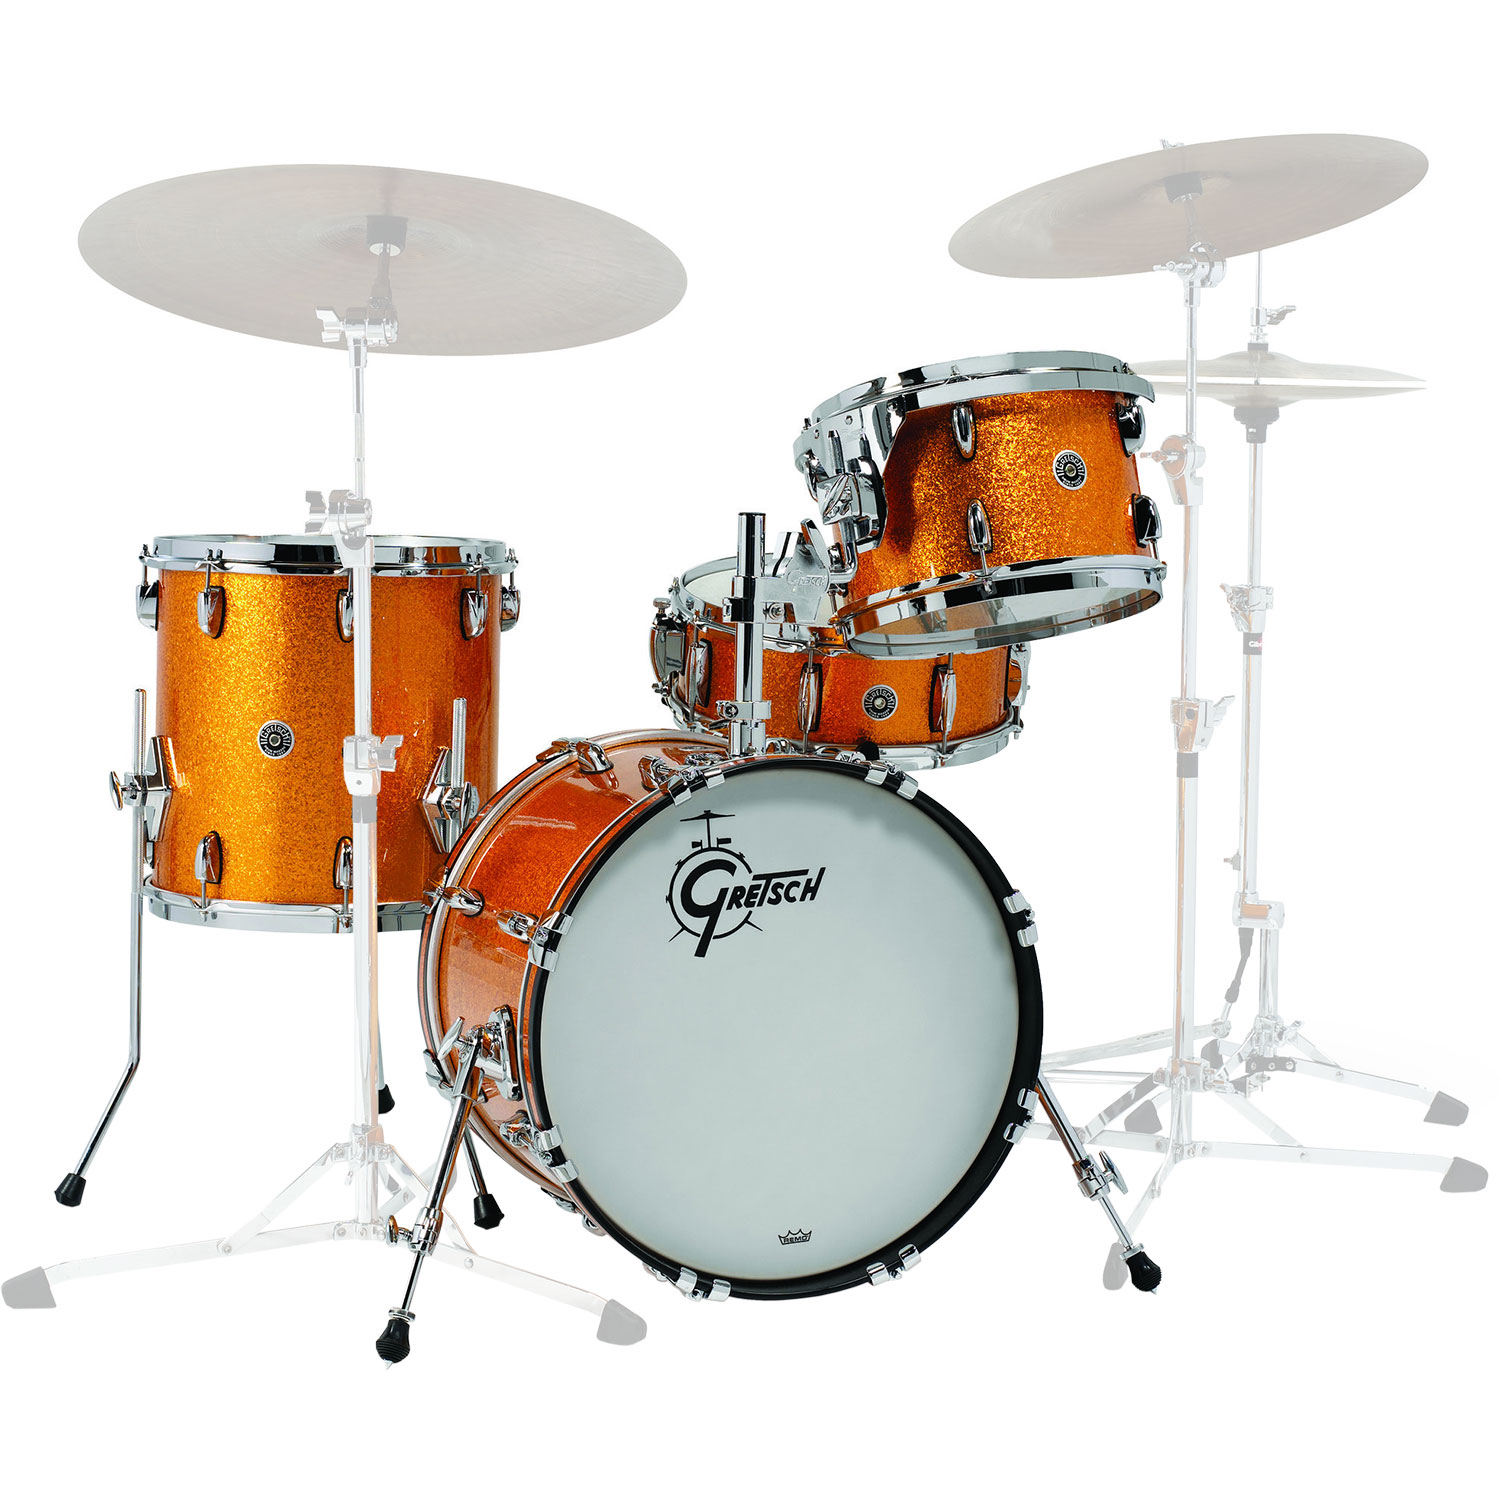 "Gretsch Brooklyn 4-Piece Drum Set Shell Pack (18"" Bass, 12/14"" Toms, 14"" Snare Drum) in Gold Sparkle Nitron"